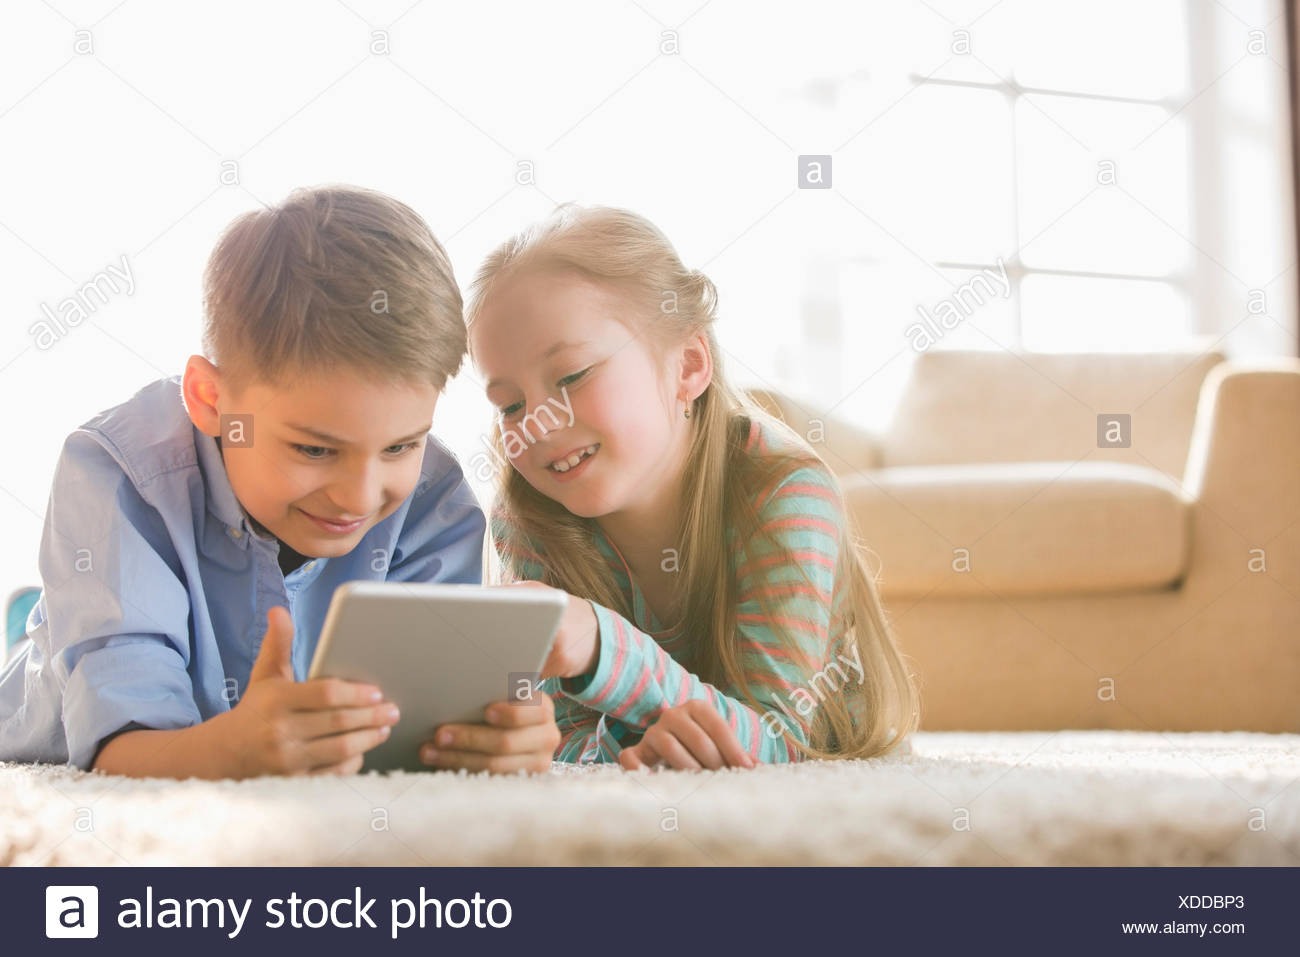 Brother and sister using digital tablet sur le plancher à la maison Photo Stock